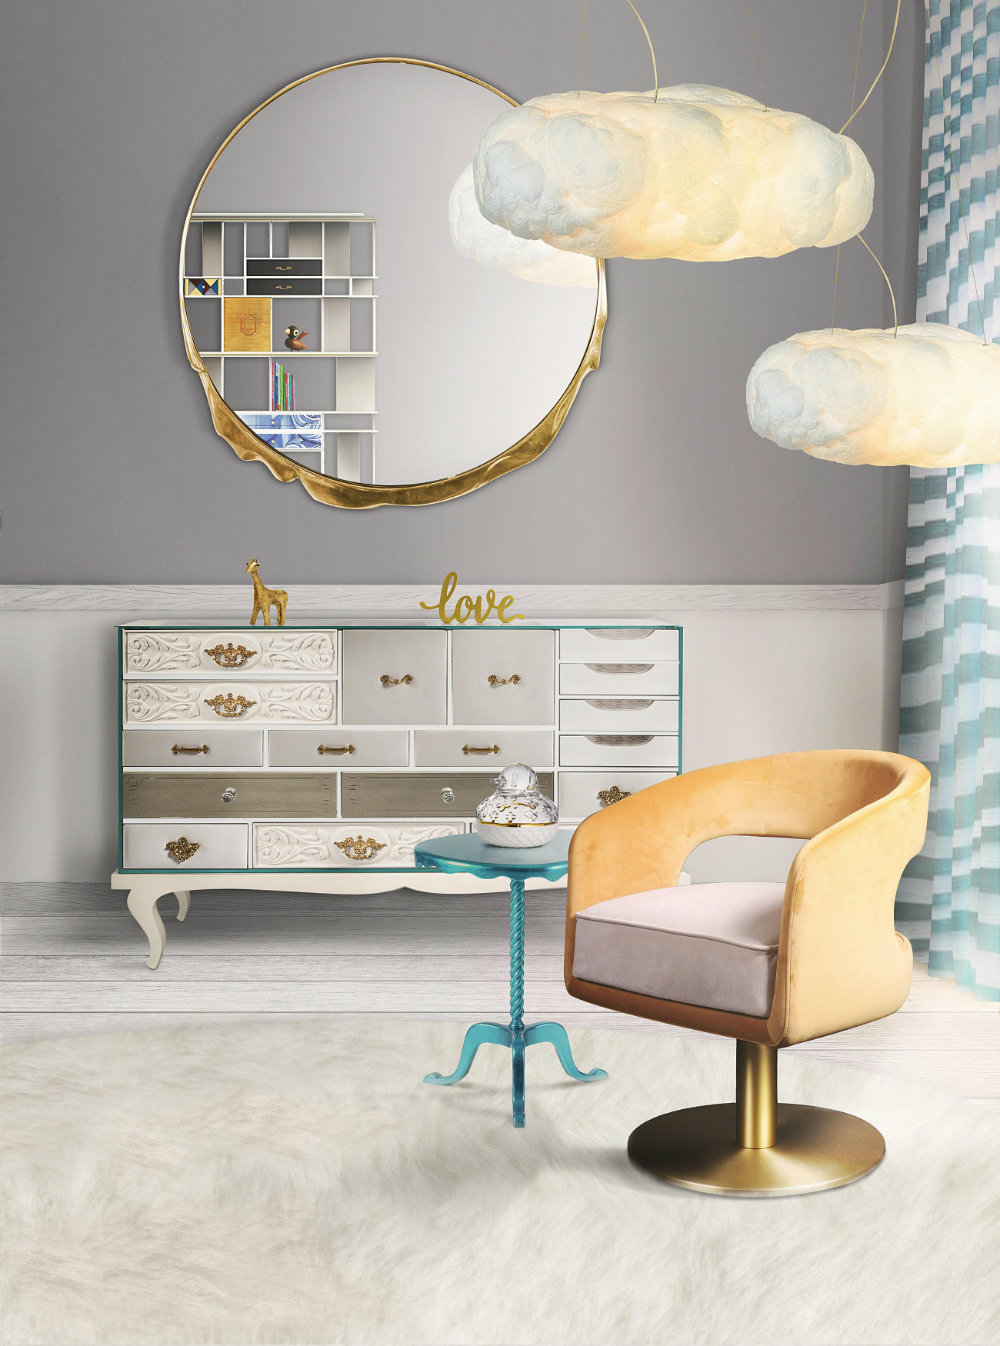 Upgrade Your Kids' Bedroom With These Ceiling Lamp Ideas